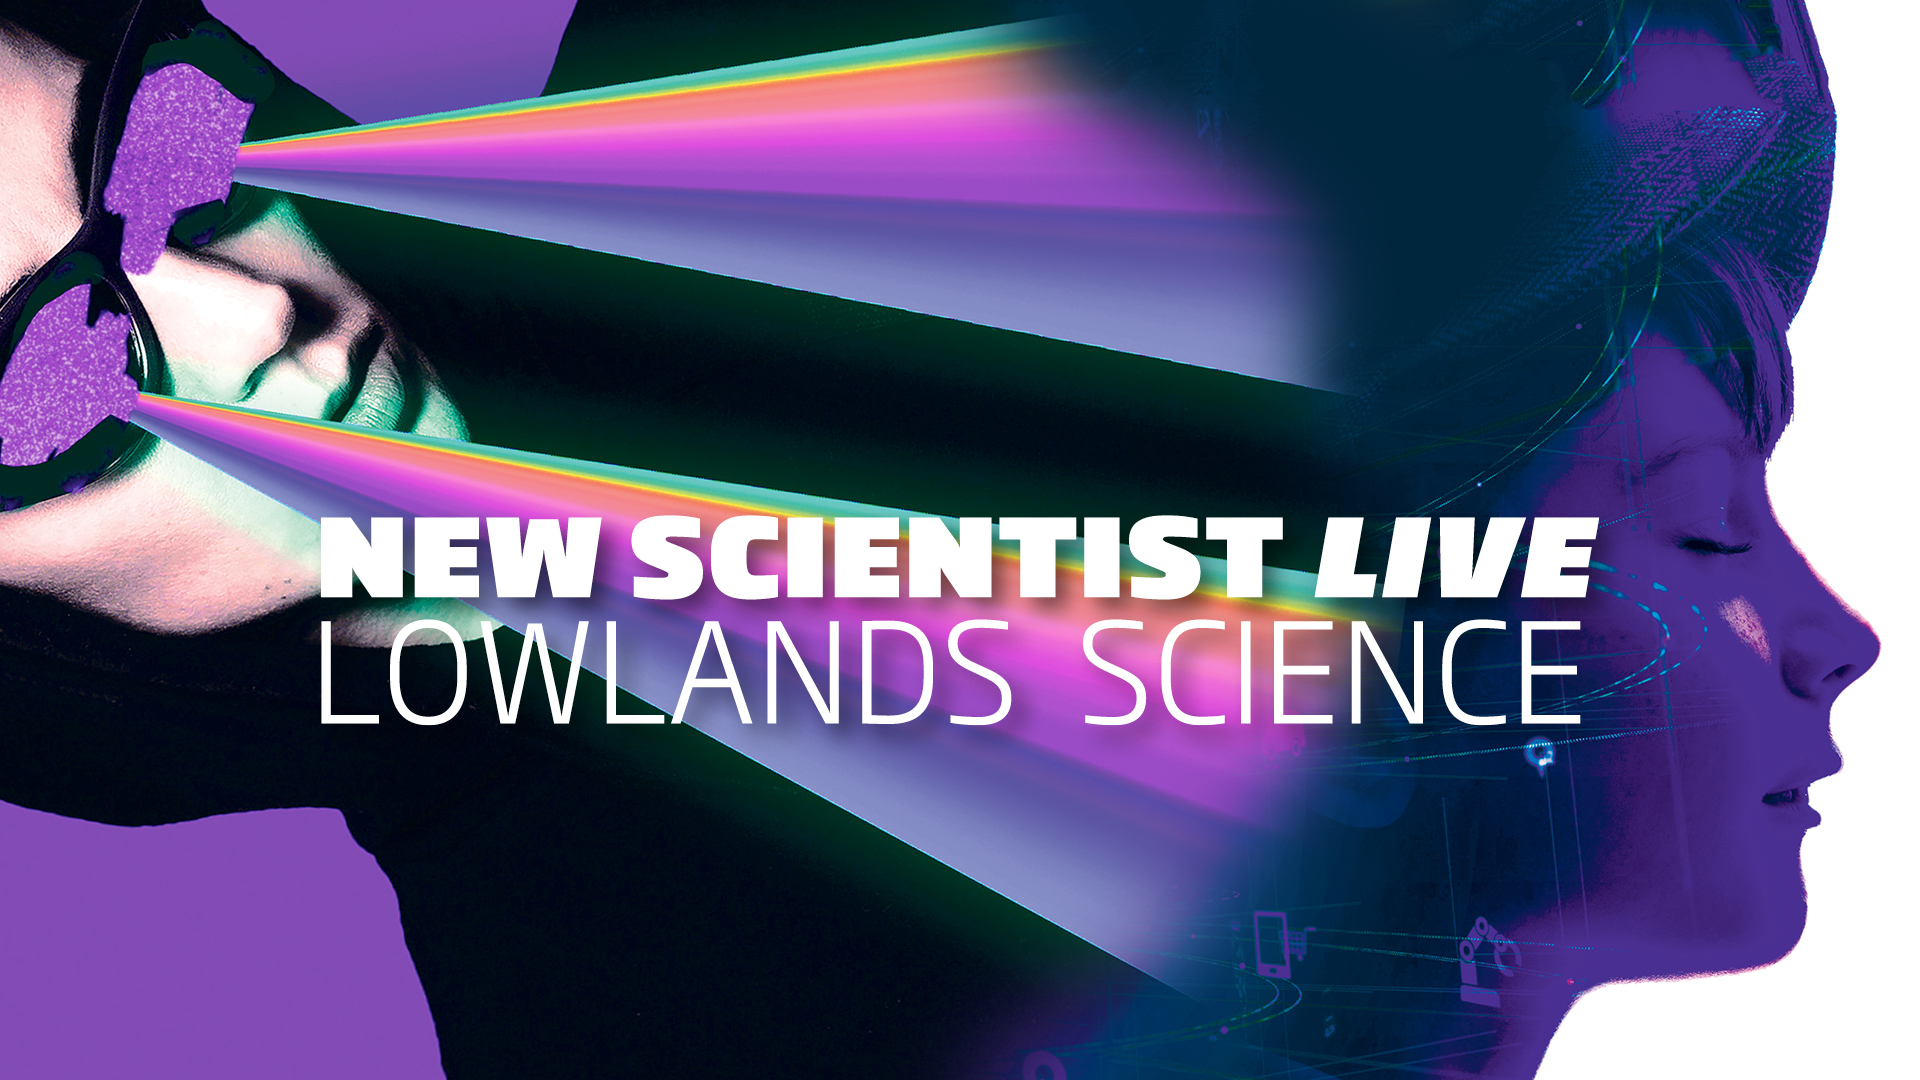 New Scientist Live - Lowlands Science